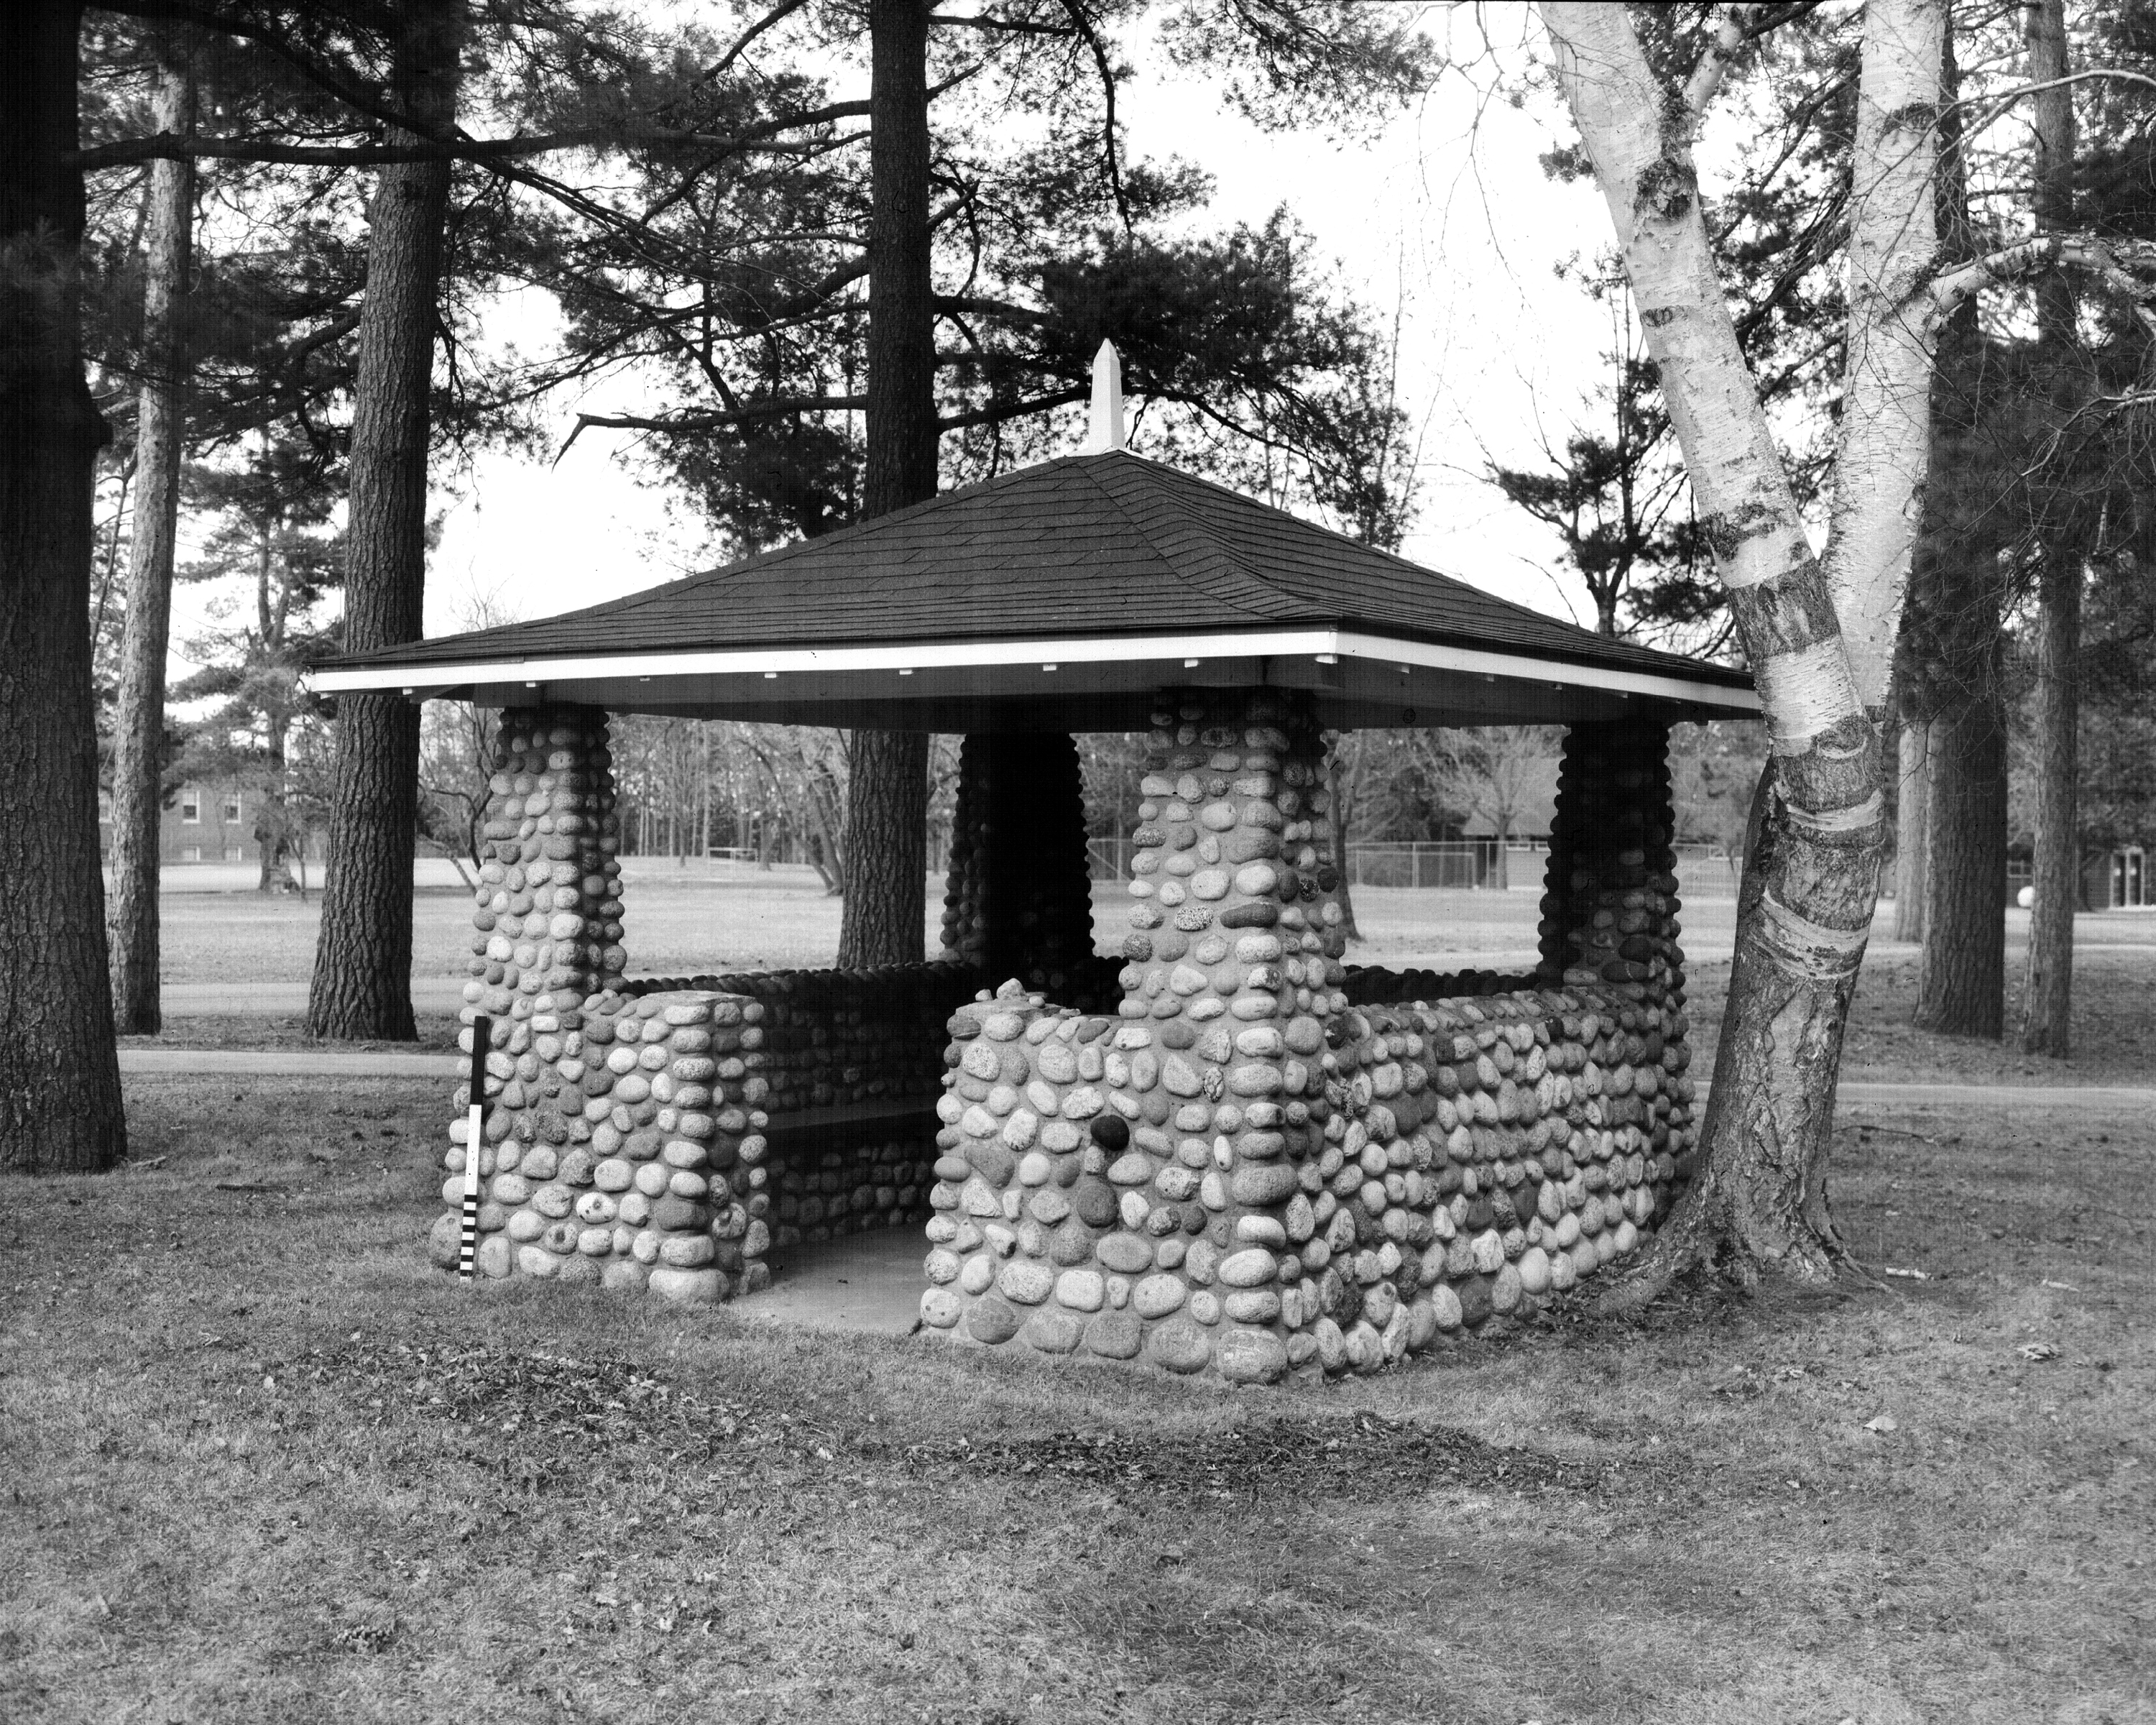 Weather Observation Station - MHPR CA-SGB-003-32 (Please credit Daniel R. Pratt and the Minnesota Historic Property Record)